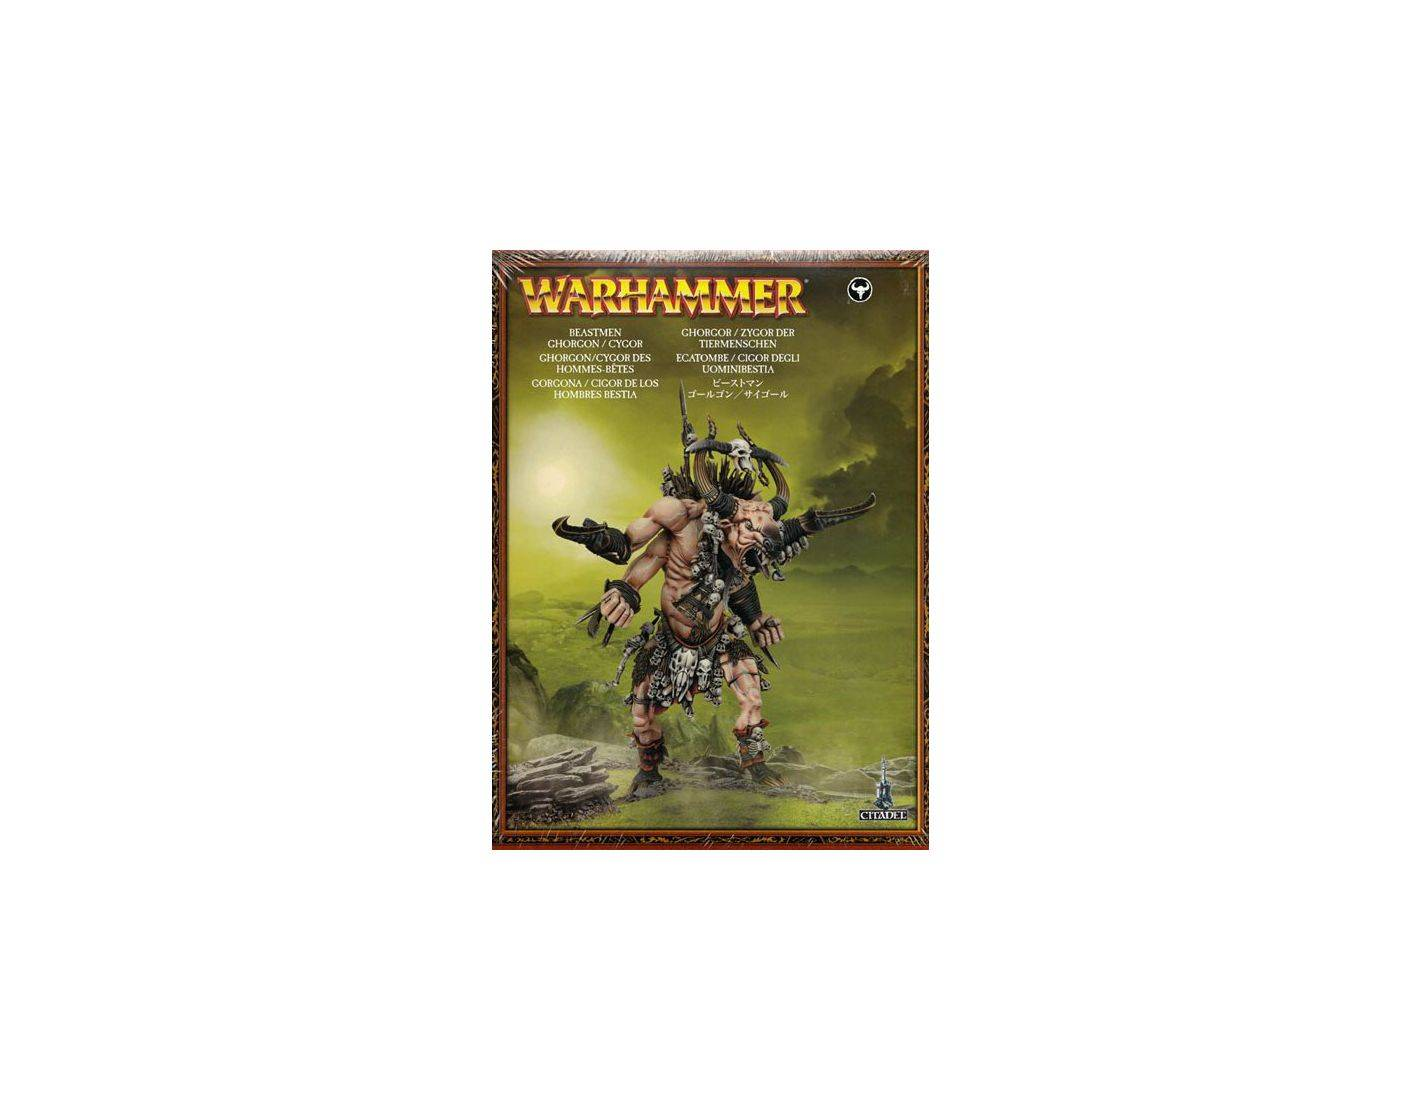 Games Workshop Warhammer 81-15 UOMINIBESTIA Citadel